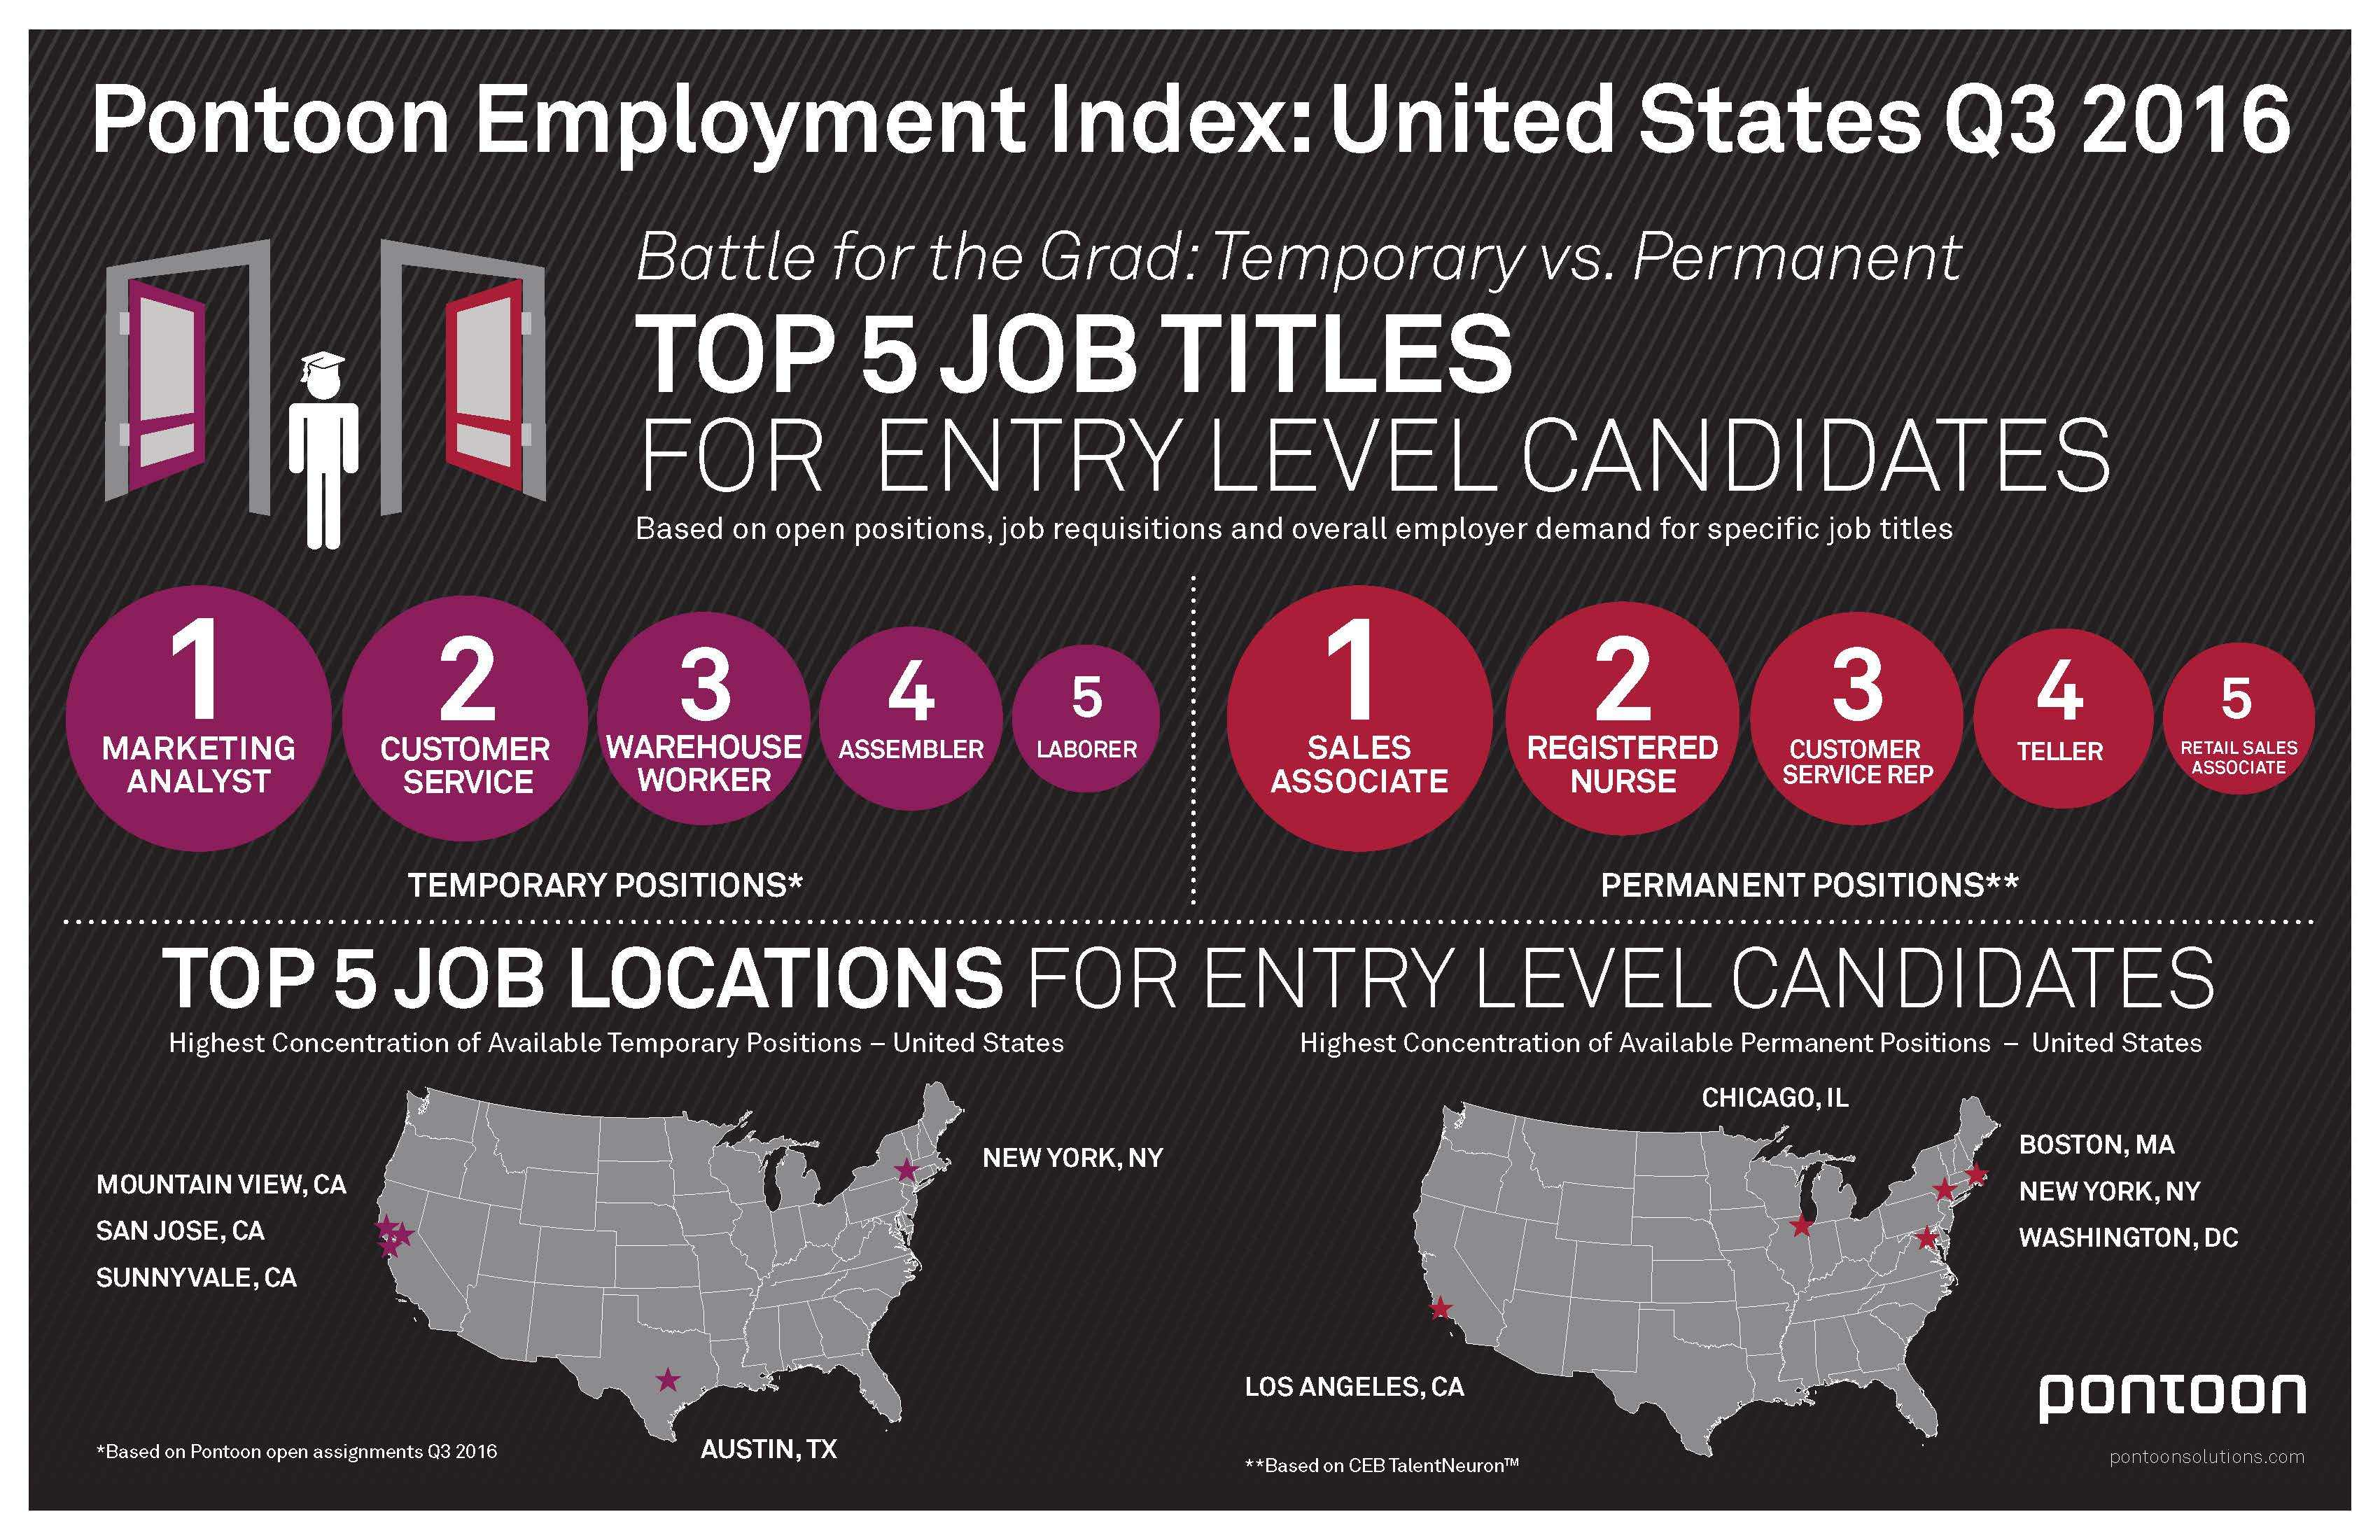 Sales Positions Top List of Most Available Jobs for College ...